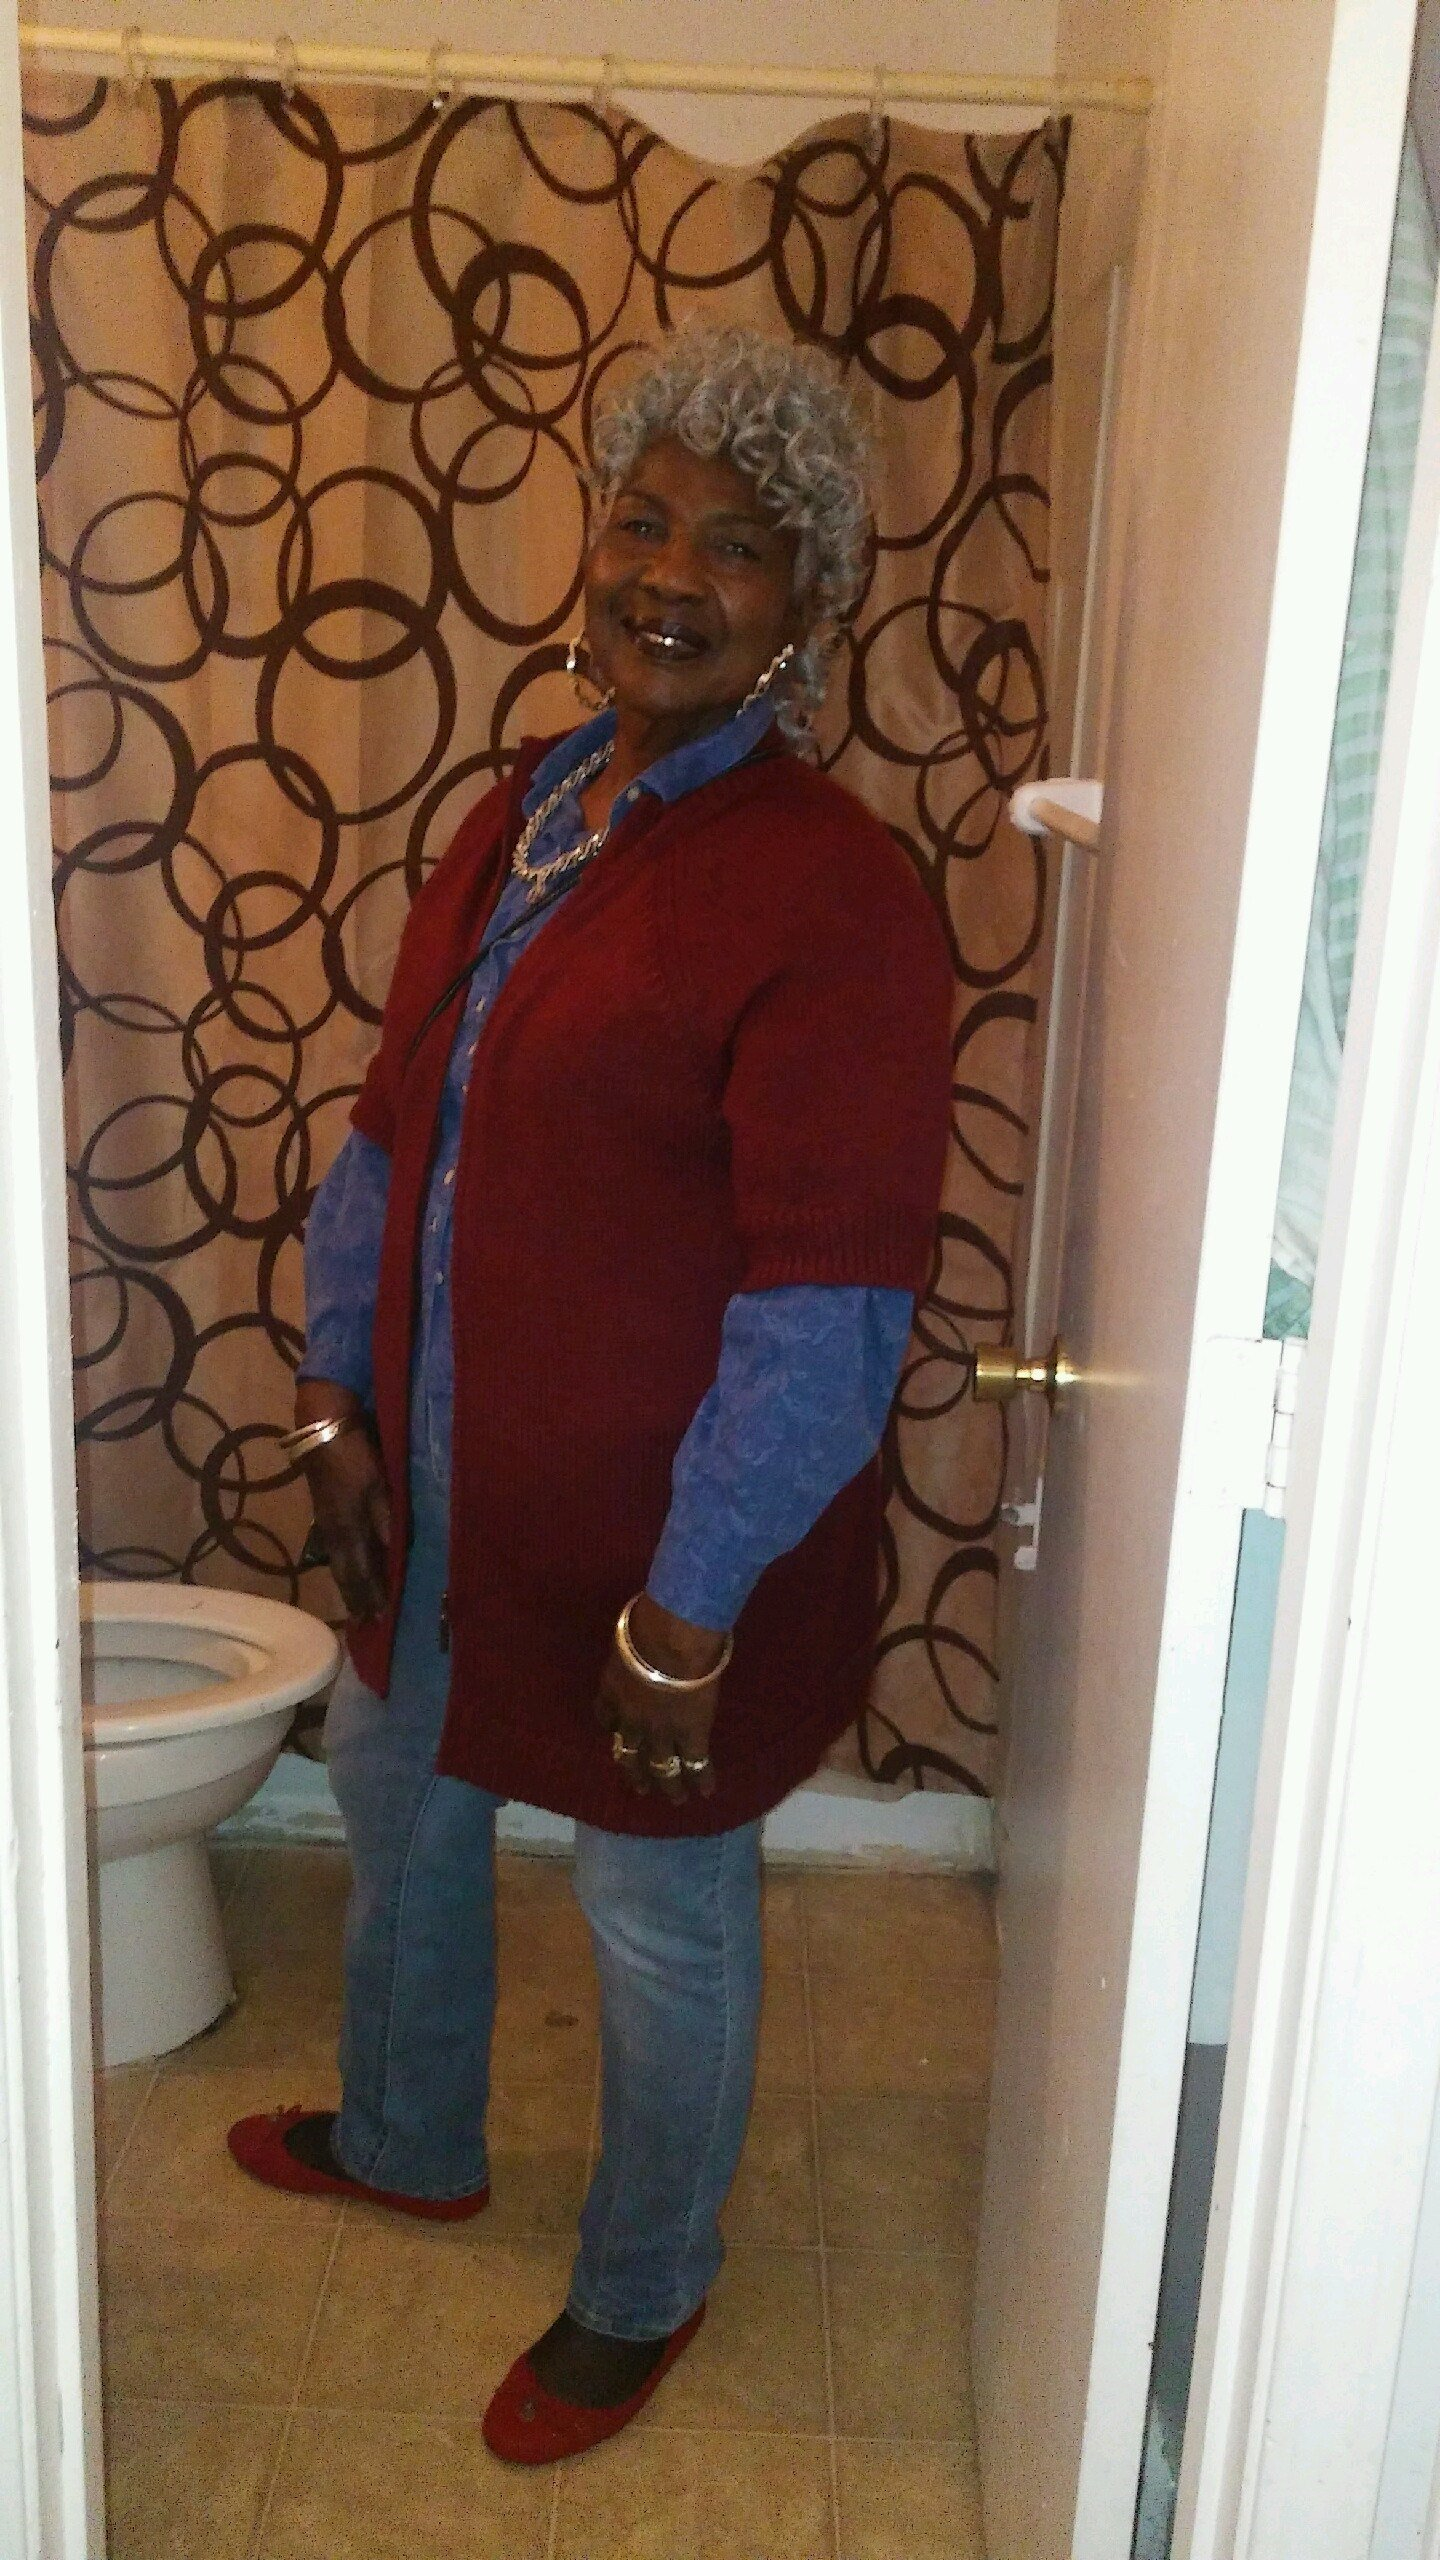 McCullough, 67, was last heard from at 2 a.m. on May 1 when she called her daughter in North Carolina.(Submitted)